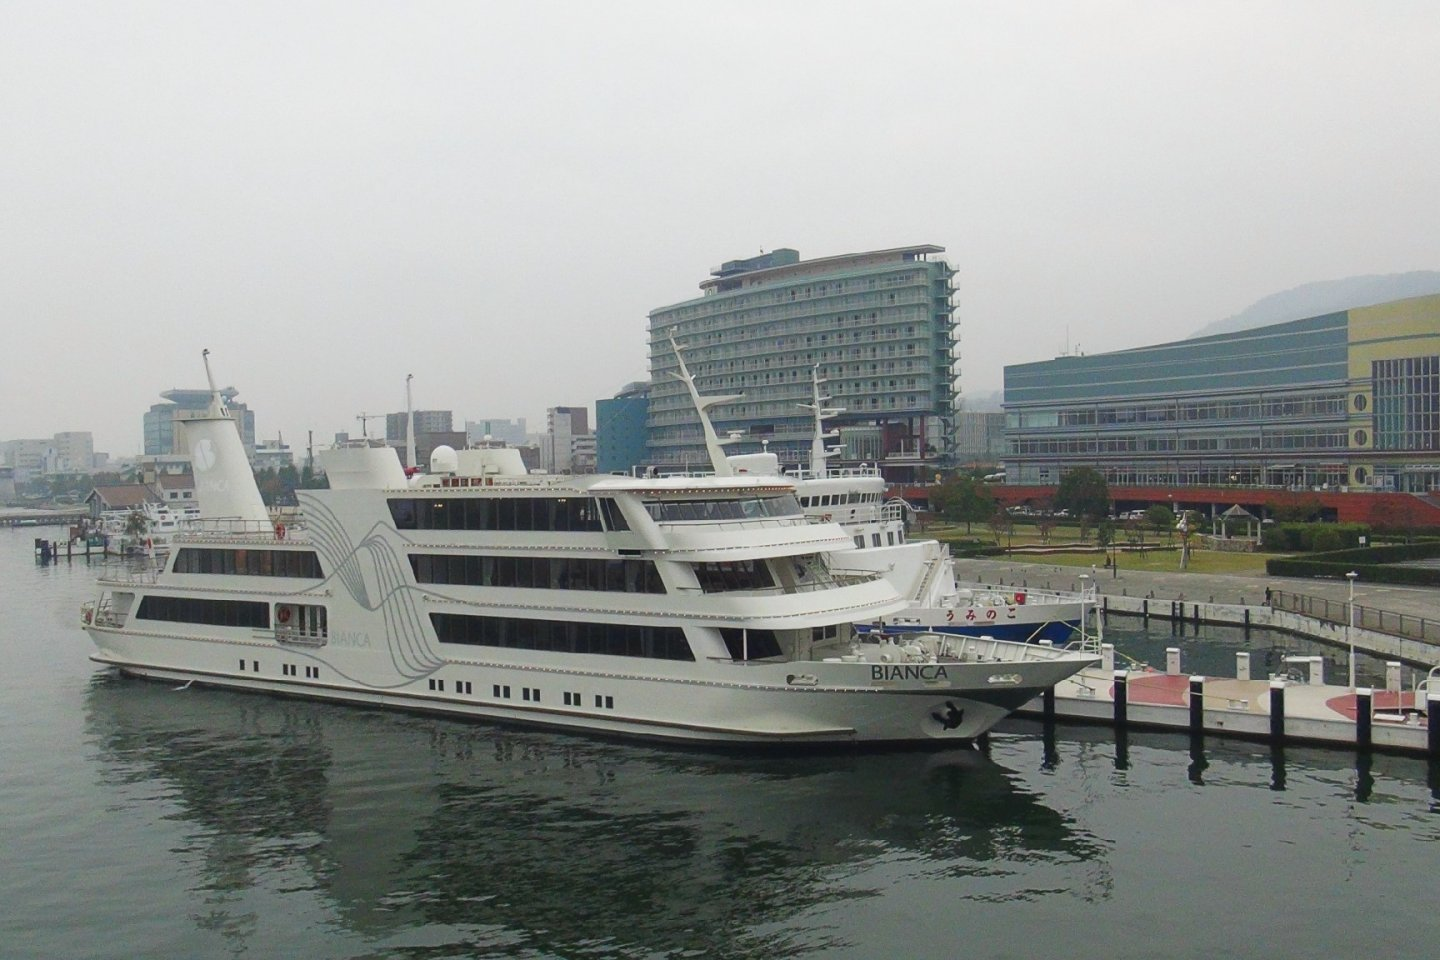 The Michigan Cruiser Pleasure Boat: Departs from the port of Hamaotsu, Otsu City, Shiga Prefecture.